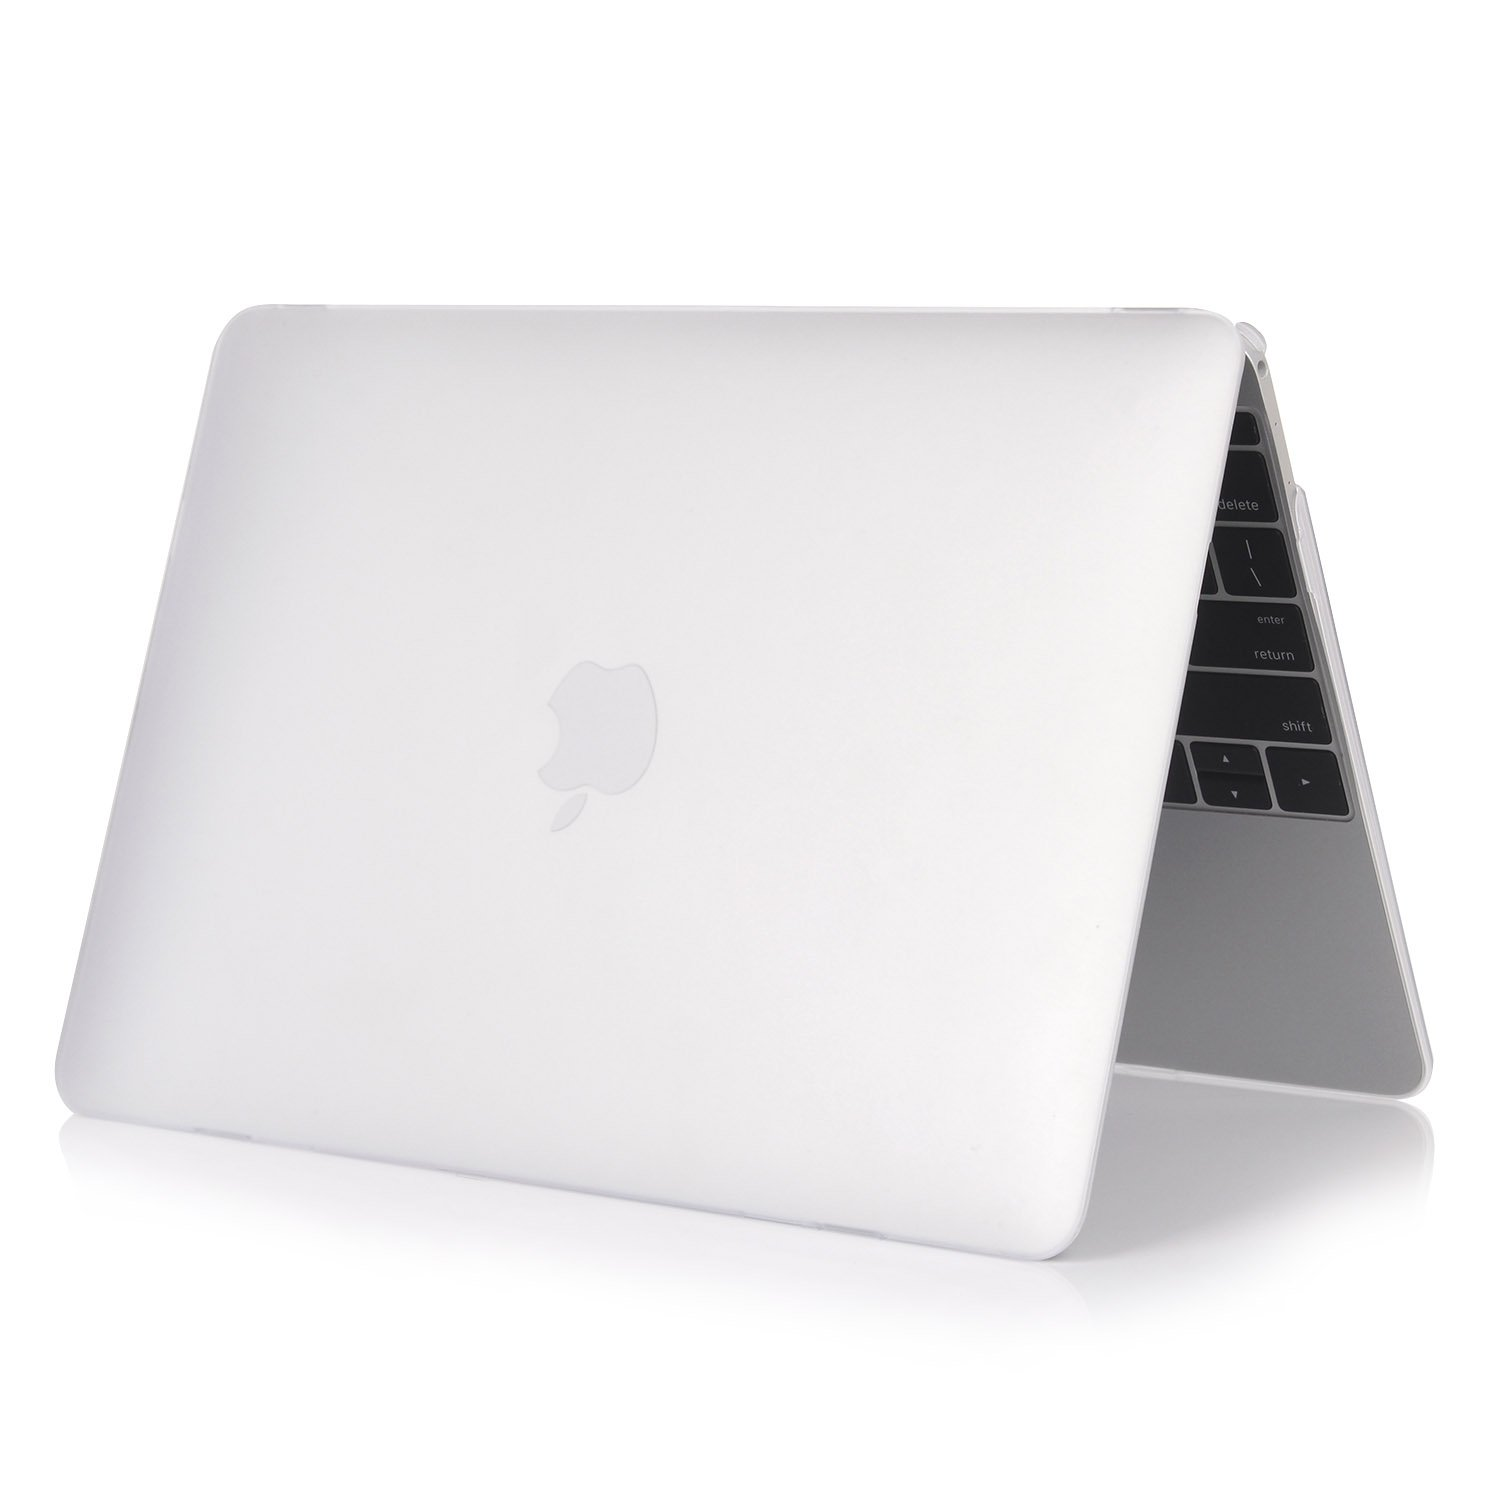 "11.6"" MOSISO TRANSPARENT Matte Case for MacBook Air Laptop SERENITY BLUE FAST FREE SHIPPING USA"